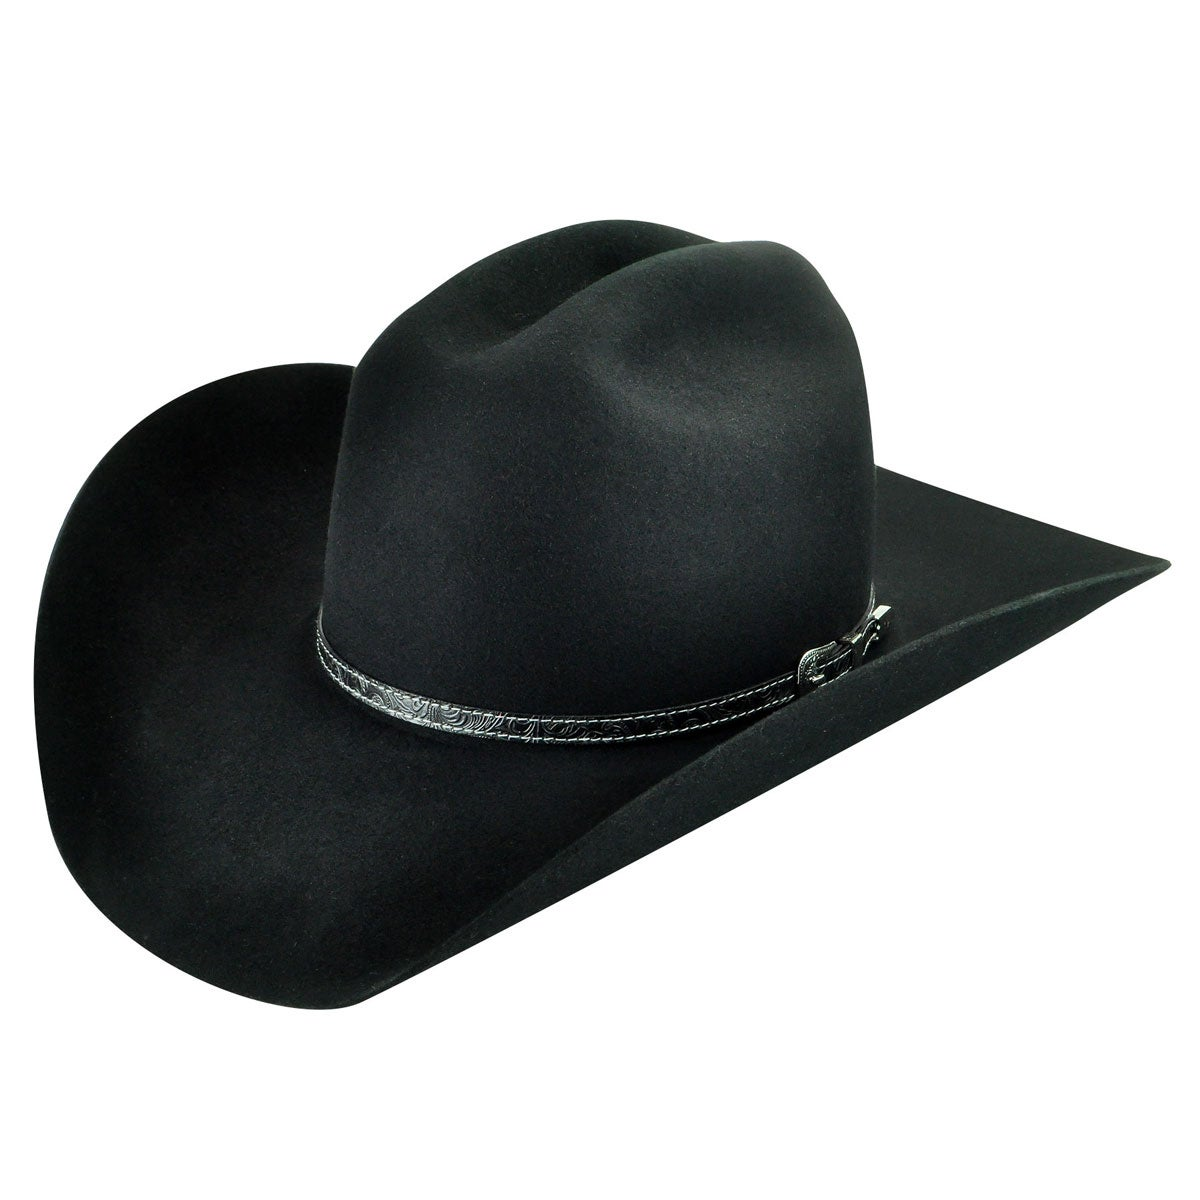 44695795b63 Details about Roderick 3X Western Hat